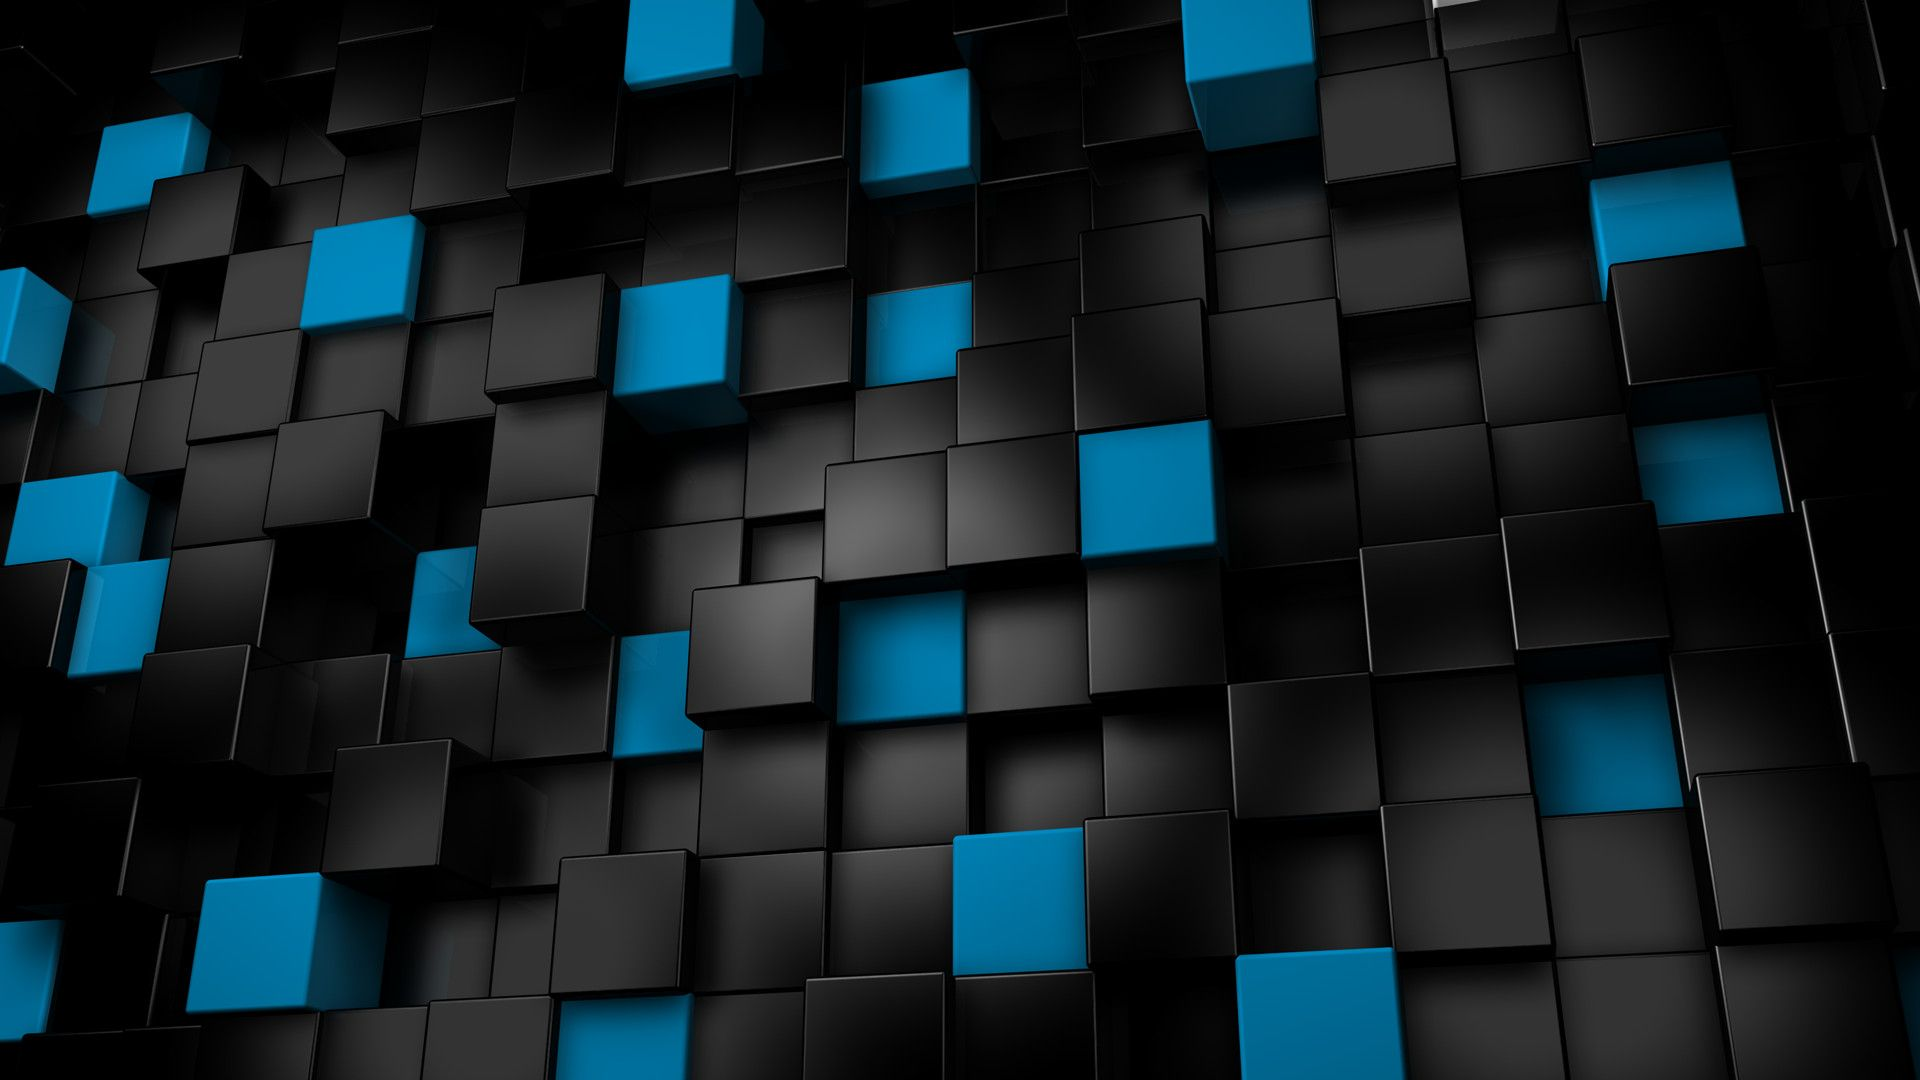 Blue Black Cubes Abstract Hd Wallpaper Hd Wallpapers High Nice